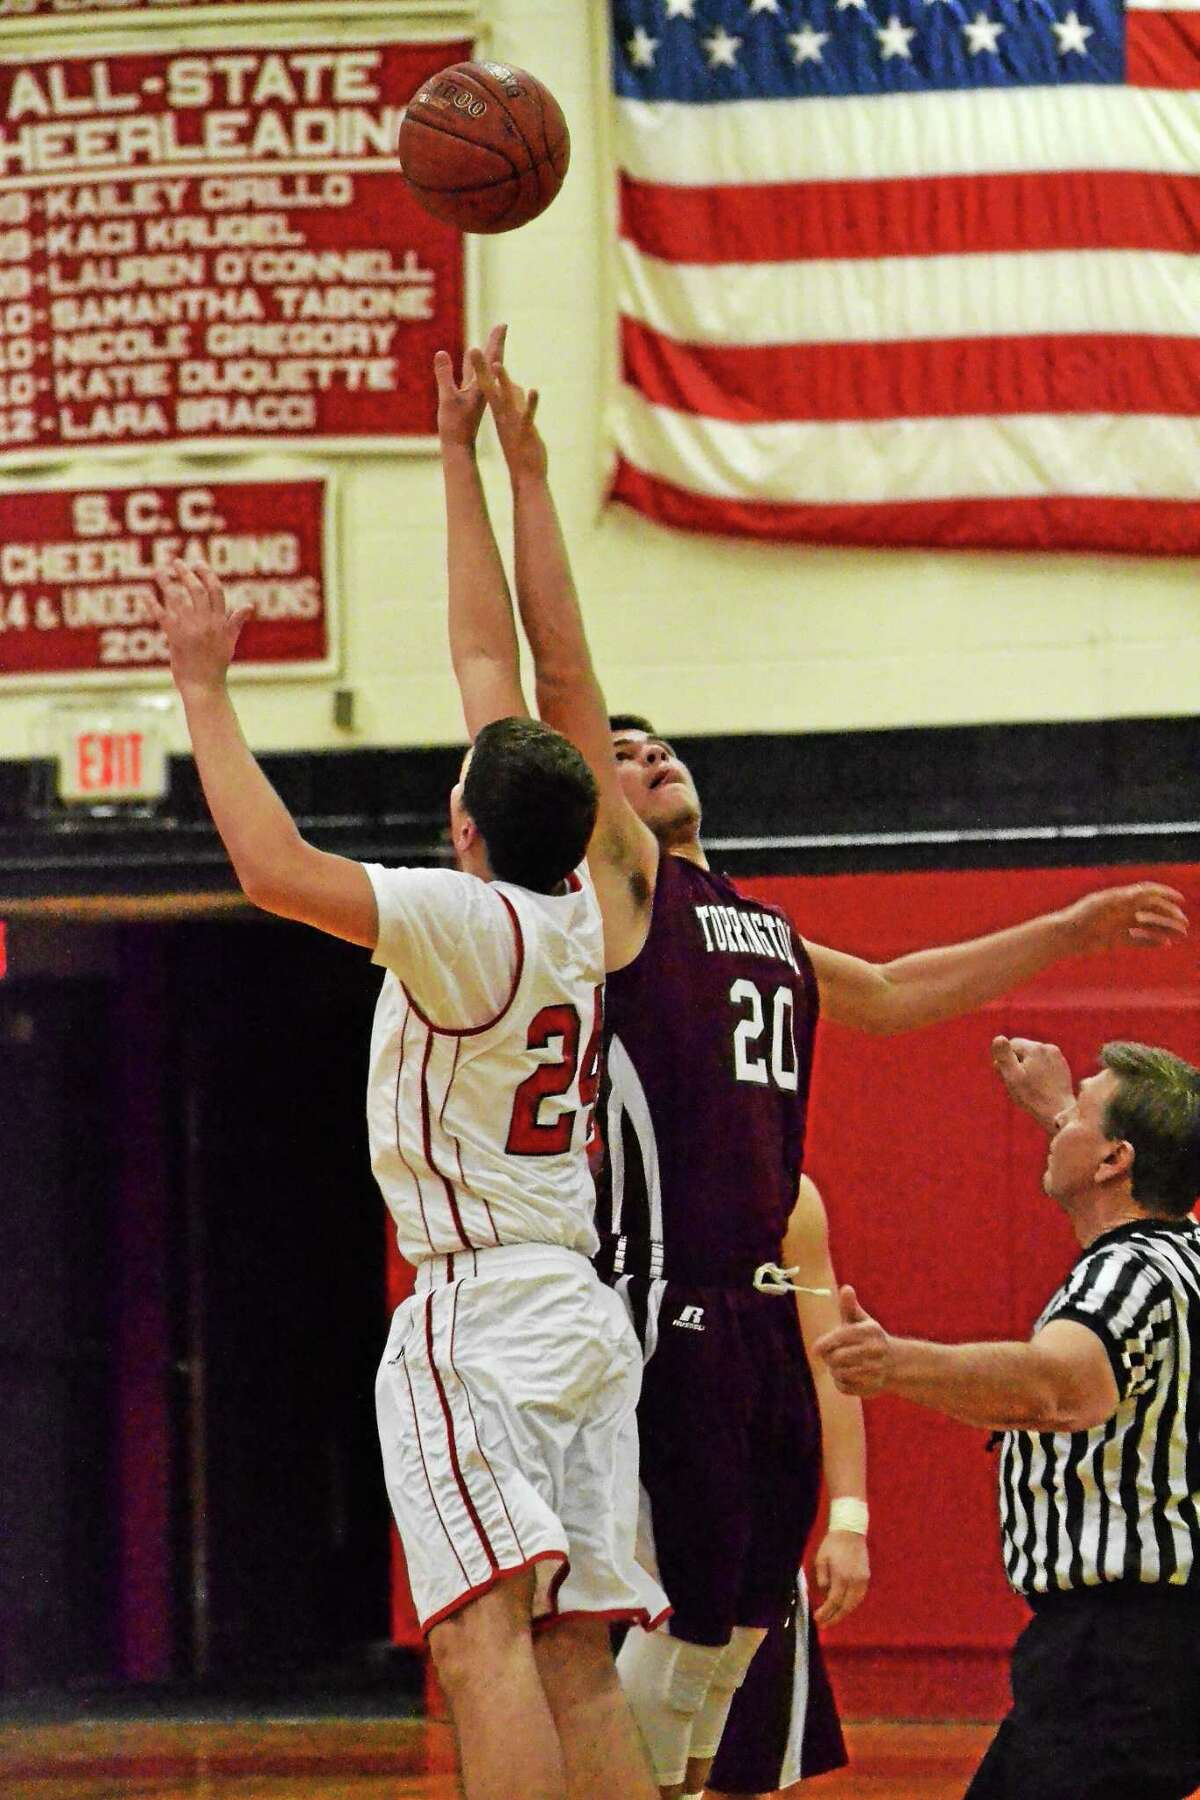 Torrington freshman Dom Sabia has been one of pleasant surprises, under the basket, for head coach Eric Gamari and the Red Raiders.